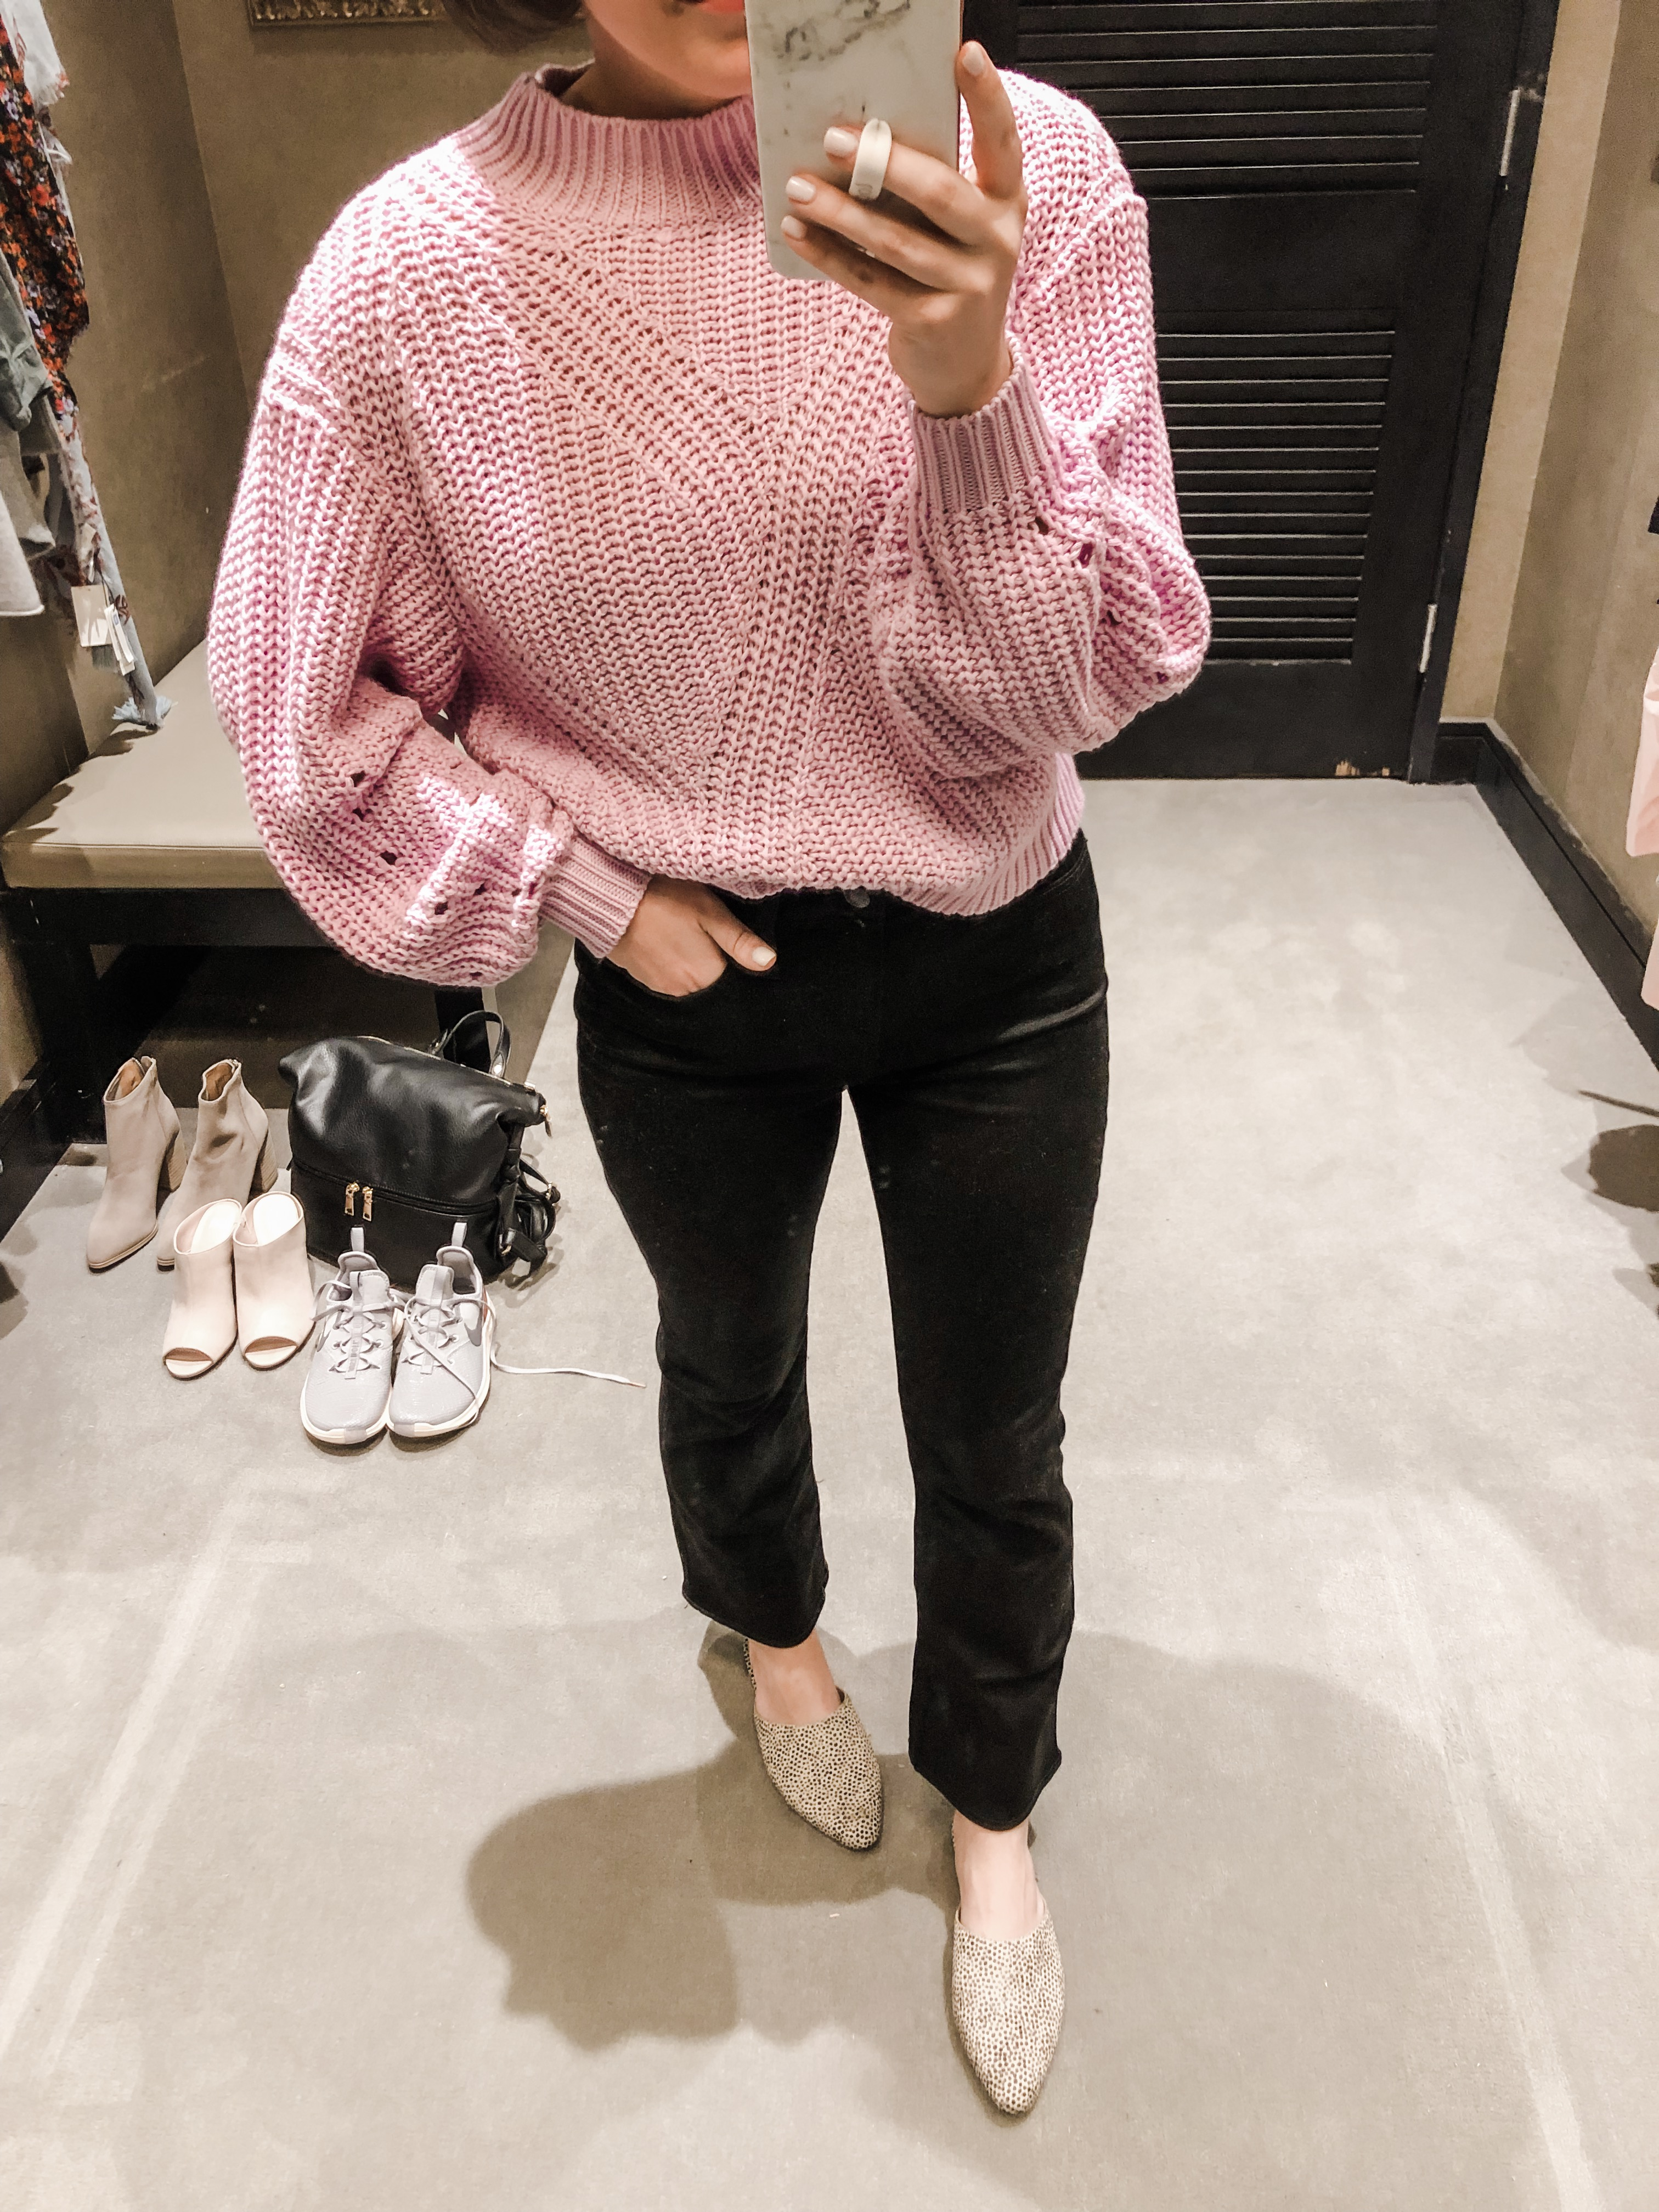 f81b1c586 was surprised to love this sweater – I'm wearing a small and for $36 on sale,  it looks and feels substantial with good detailing. also comes in a bright  ...